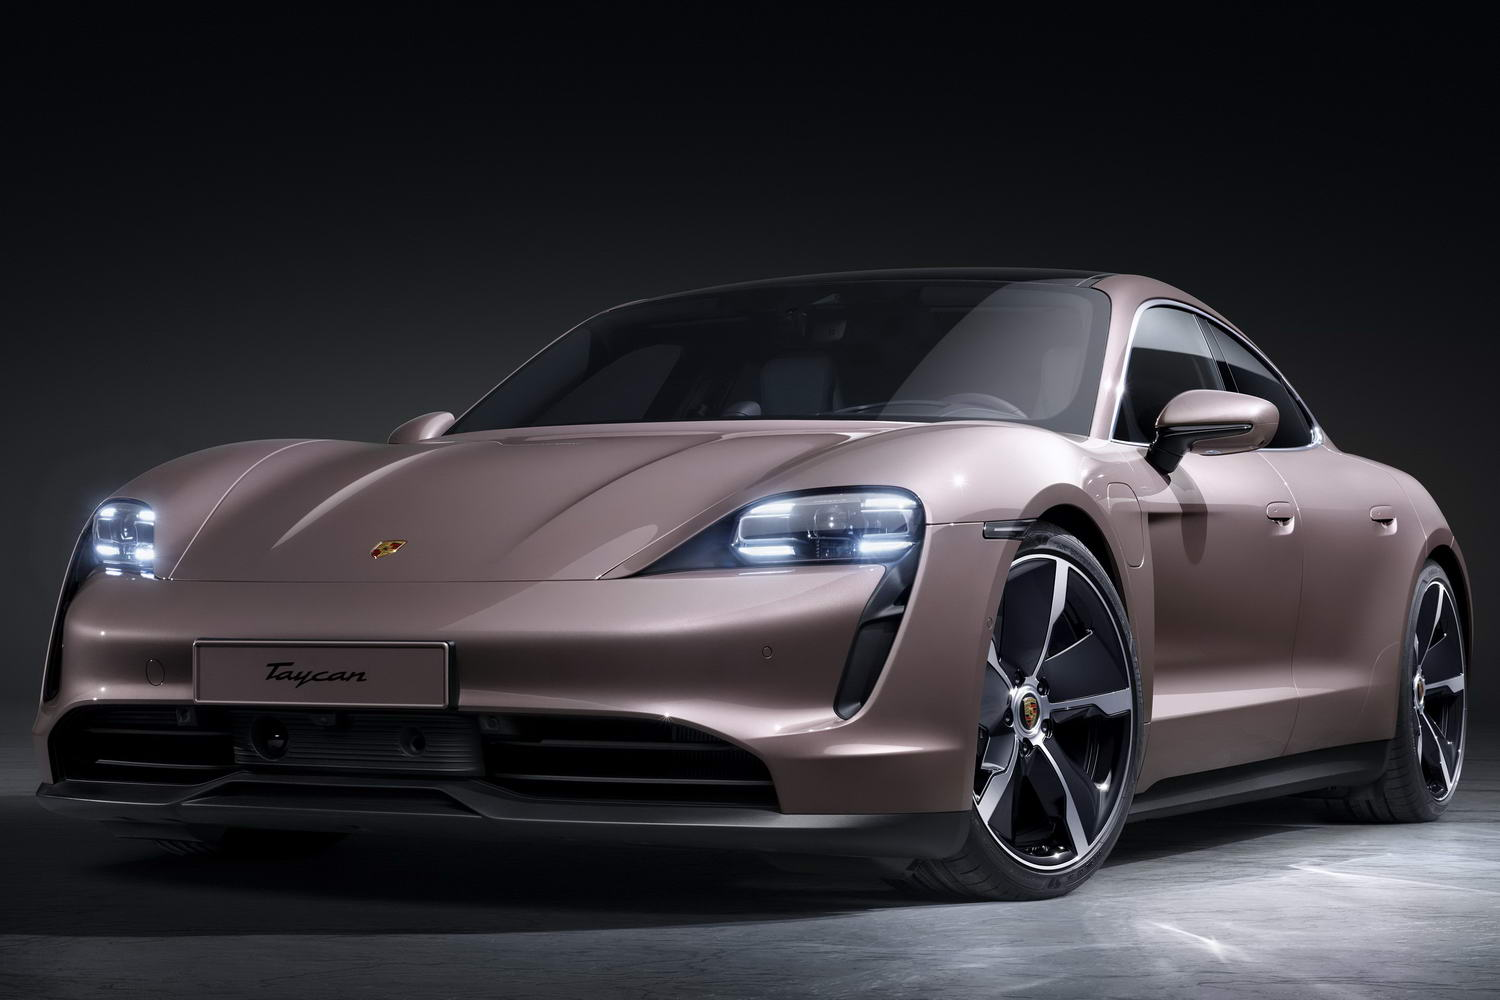 Electric Porsche Taycan goes rear-wheel drive